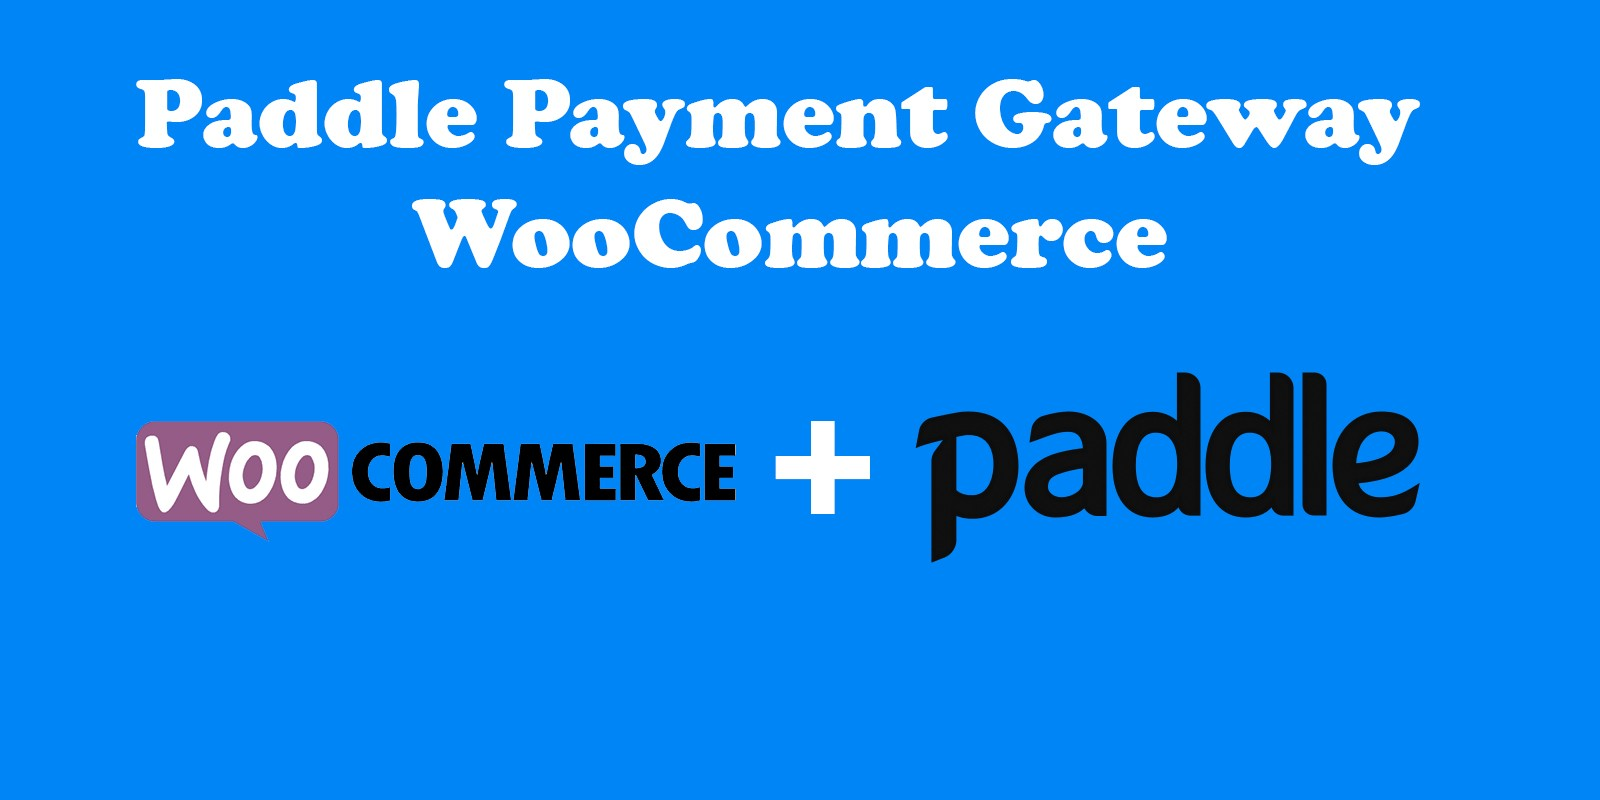 Paddle Payment Gateway For WooCommerce WordPress